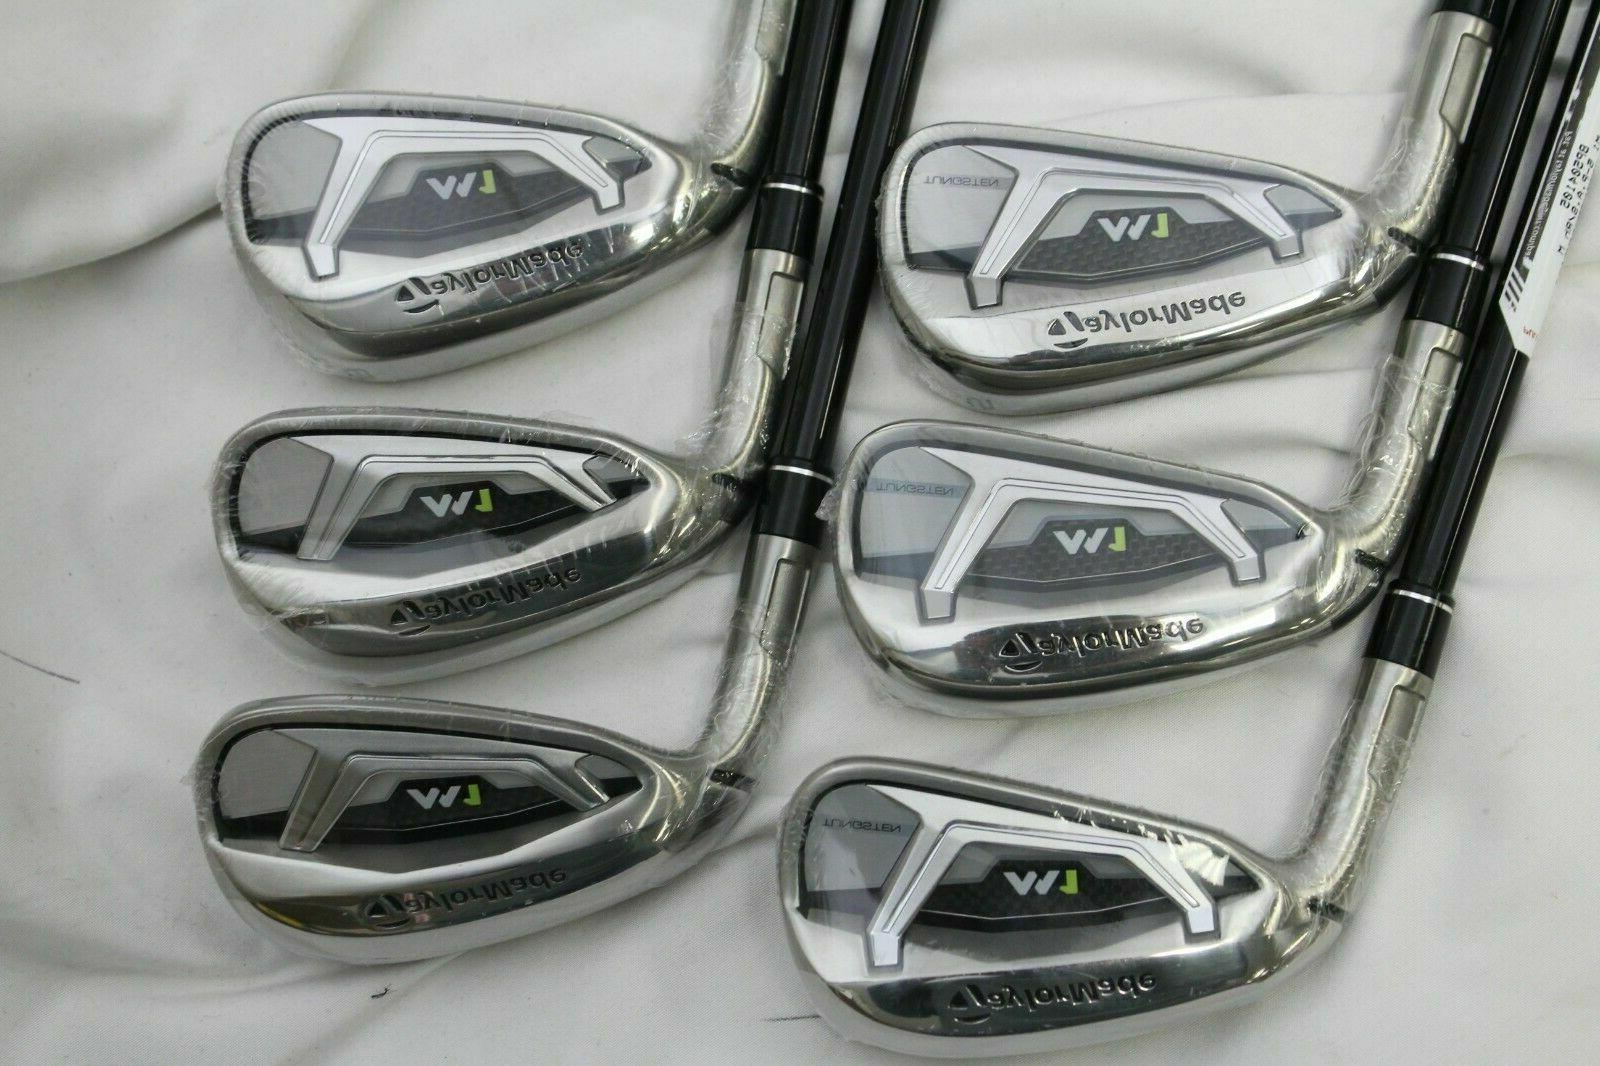 New Taylormade 5-PW Iron set Kage 80 Stiff graphite M-1 Irons